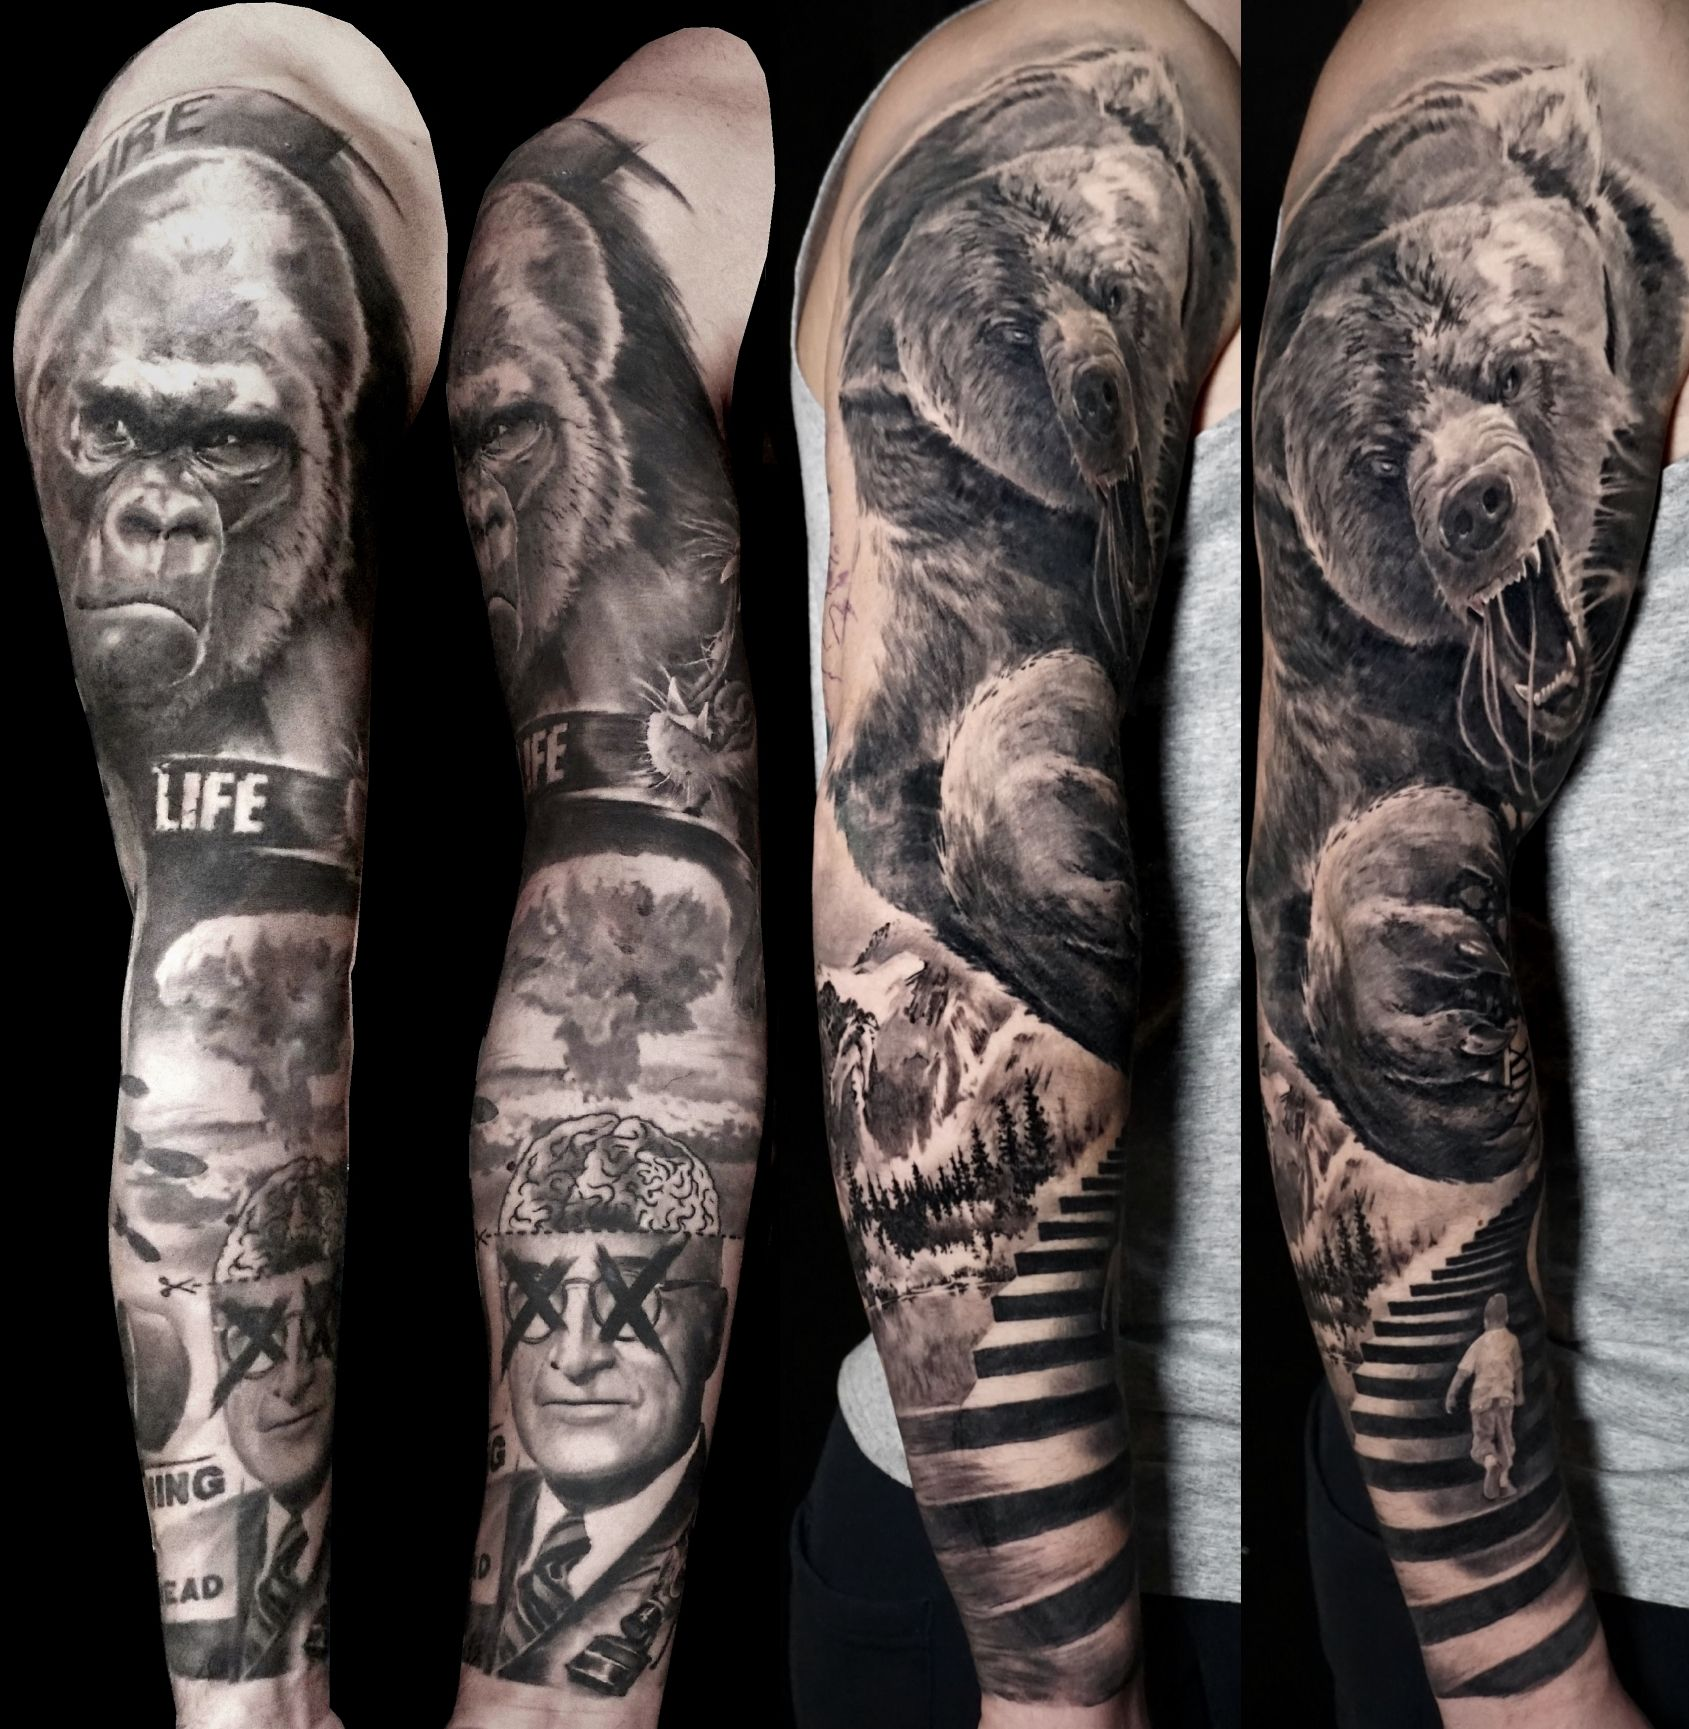 Some Of My Favourite Full Sleeves Animaltattoos Bestblackandgrey Bng Realistic Fullsleeve Londont Black And Grey Tattoos Gorilla Tattoo Sleeve Tattoos